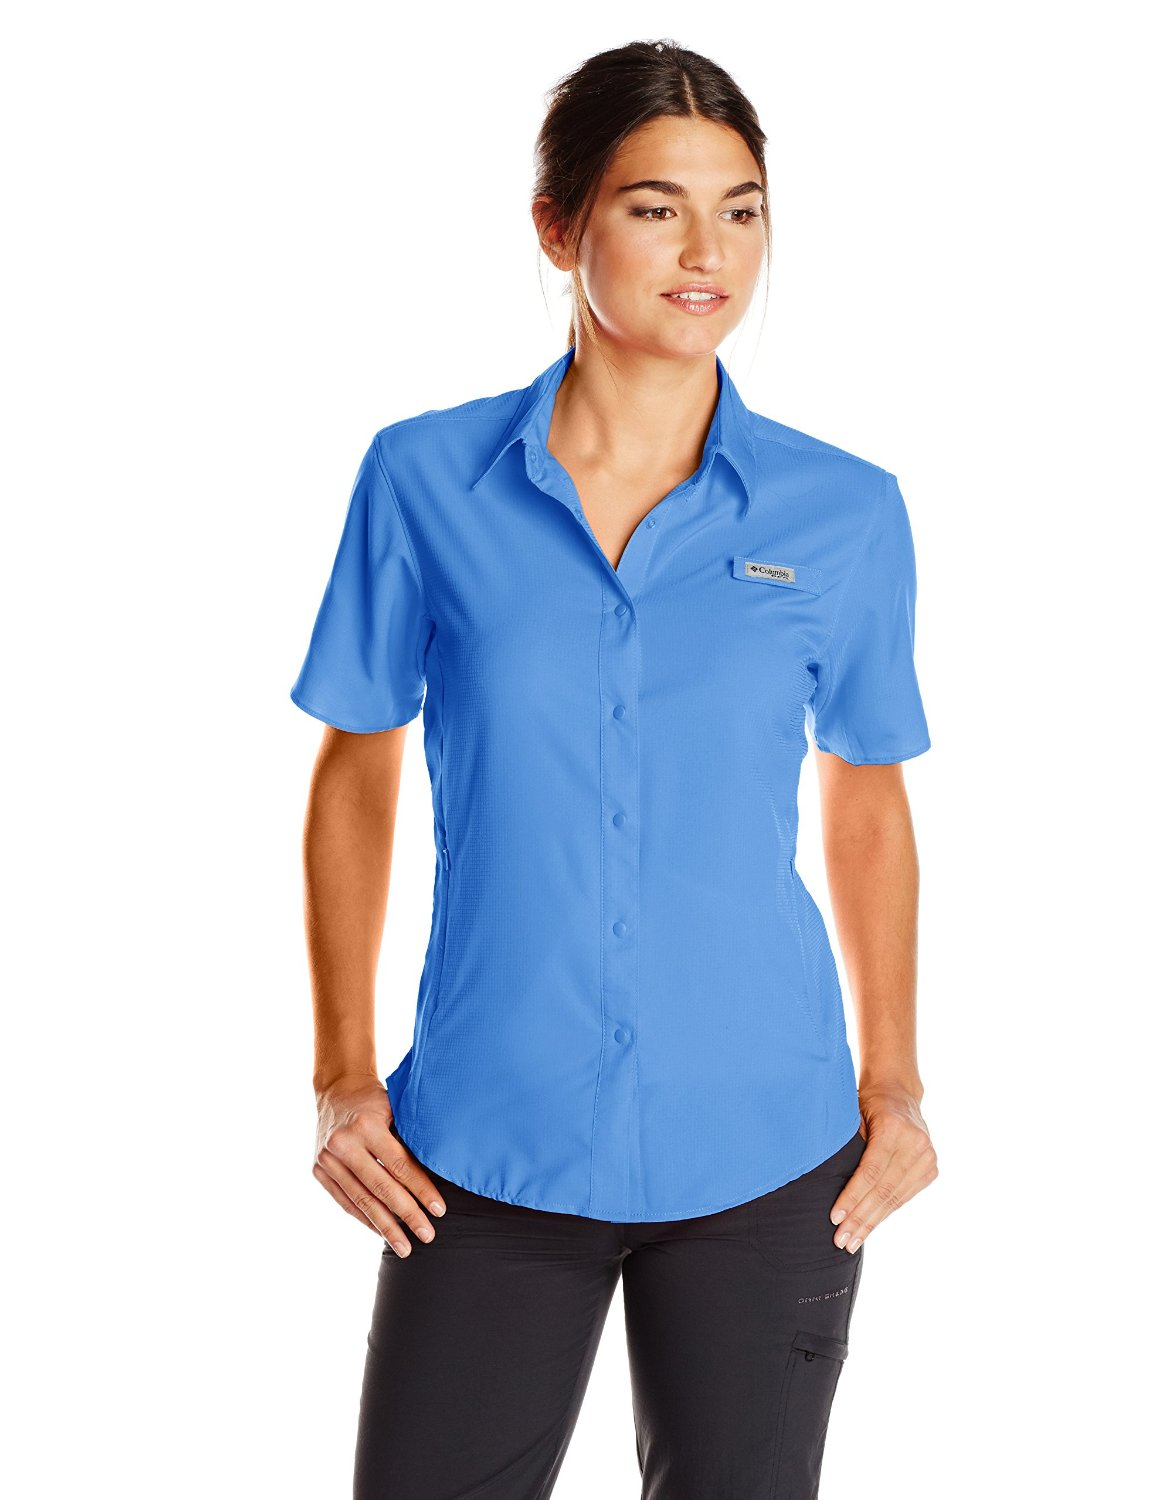 Amazon.com : Columbia Sportswear Women's Tamiami II Short Sleeve Shirt